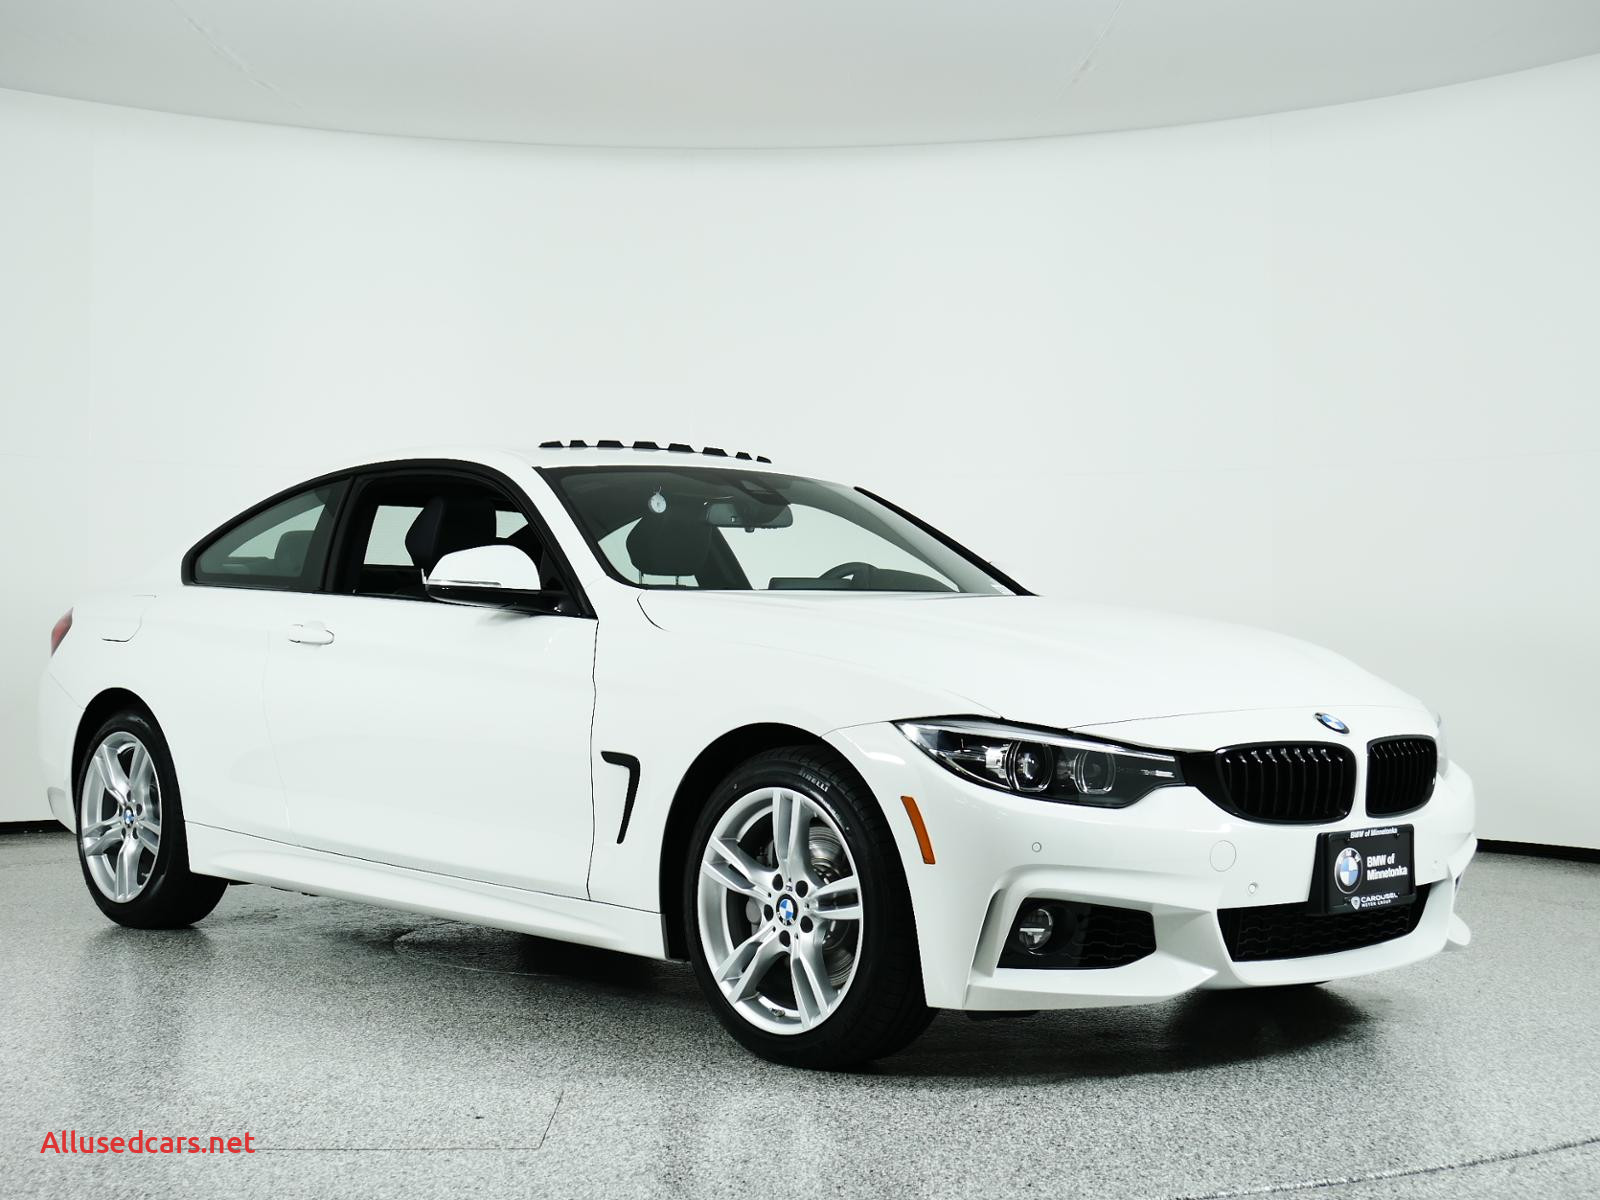 Bmw 428i Coupe Lovely New 2020 Bmw 4 Series 440i Xdrive with Navigation & Awd